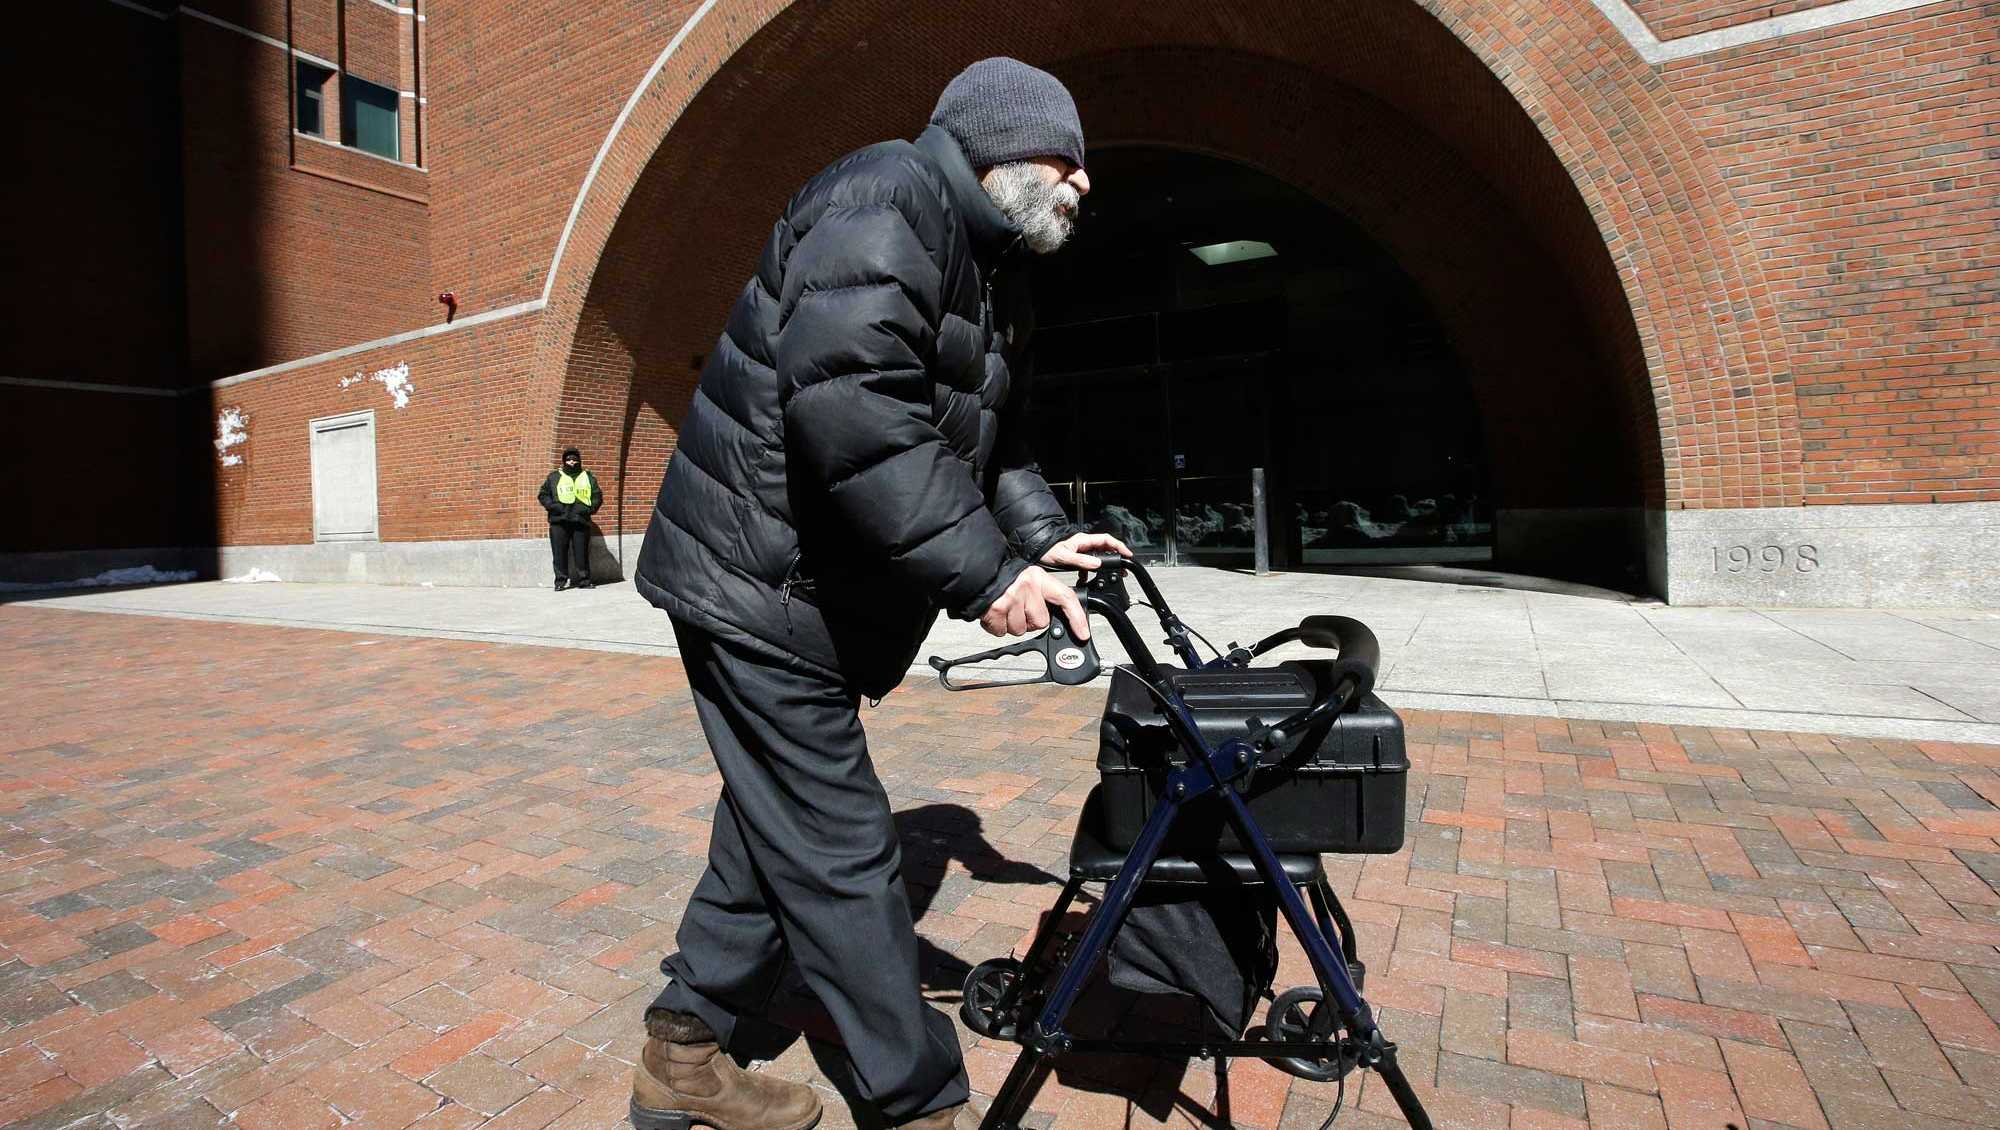 Dr. Fathalla Mashali departs federal court Wednesday, March 15, 2017, in Boston, after pleading guilty to multiple counts of health care fraud. Prosecutors said Mashali often saw more than 100 patients a day and would write prescriptions for oxycodone and other opioids without doing physical exams or medical tests to determine whether patients had a legitimate medical condition that required powerful painkillers.